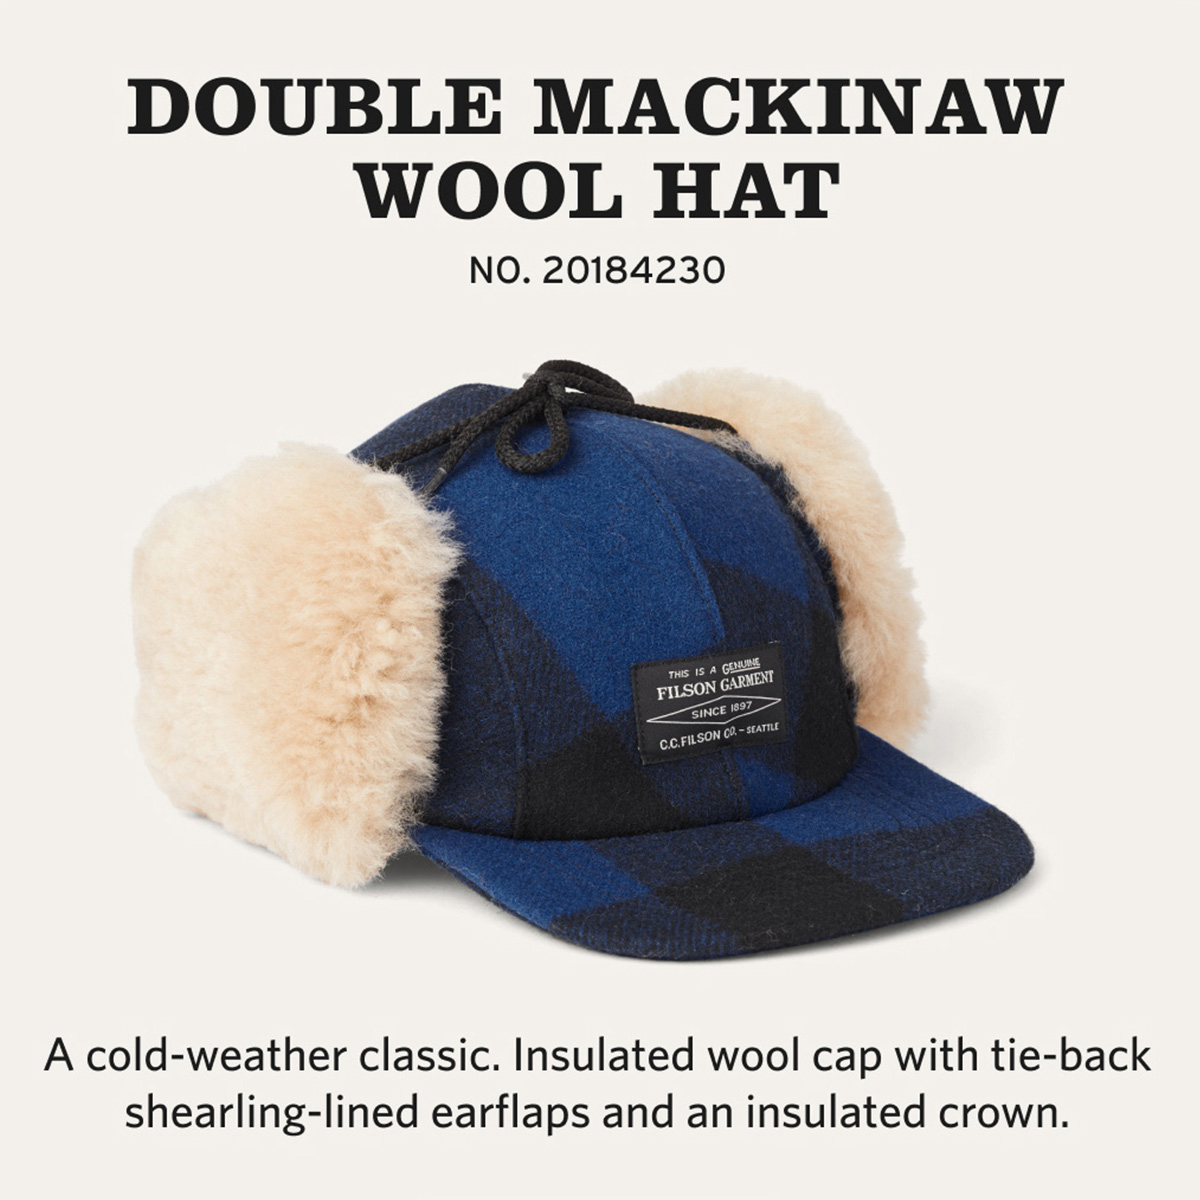 Filson Double Mackinaw Cap Cobalt Black, made of 100% virgin Mackinaw Wool for comfort, natural water-repellency and insulating warmth in any weather conditions